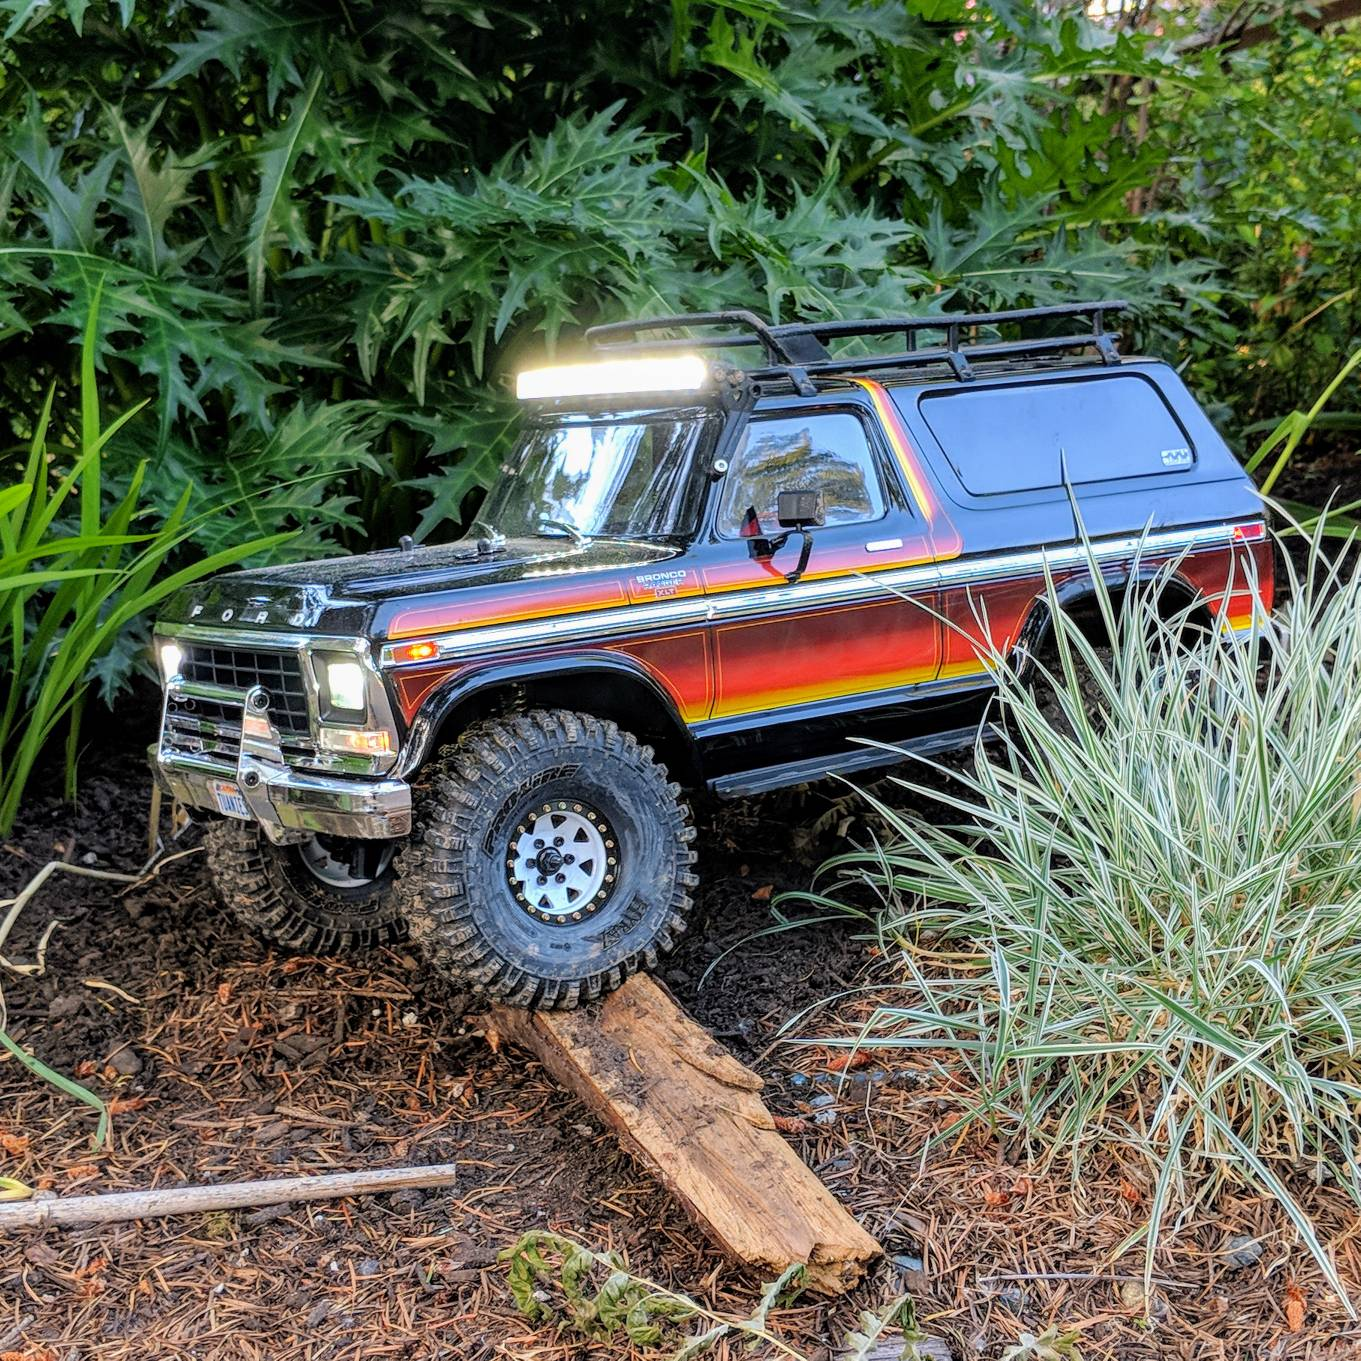 Tuanies Trx 4 Defender Bronco Build Logs Page 2 Rccrawler Pole Barn 7 Ford Forum Dusted Off The For A Little Remote Control Therapy After Work Havent Really Taken It Out Since I Installed Fake Spare Tire